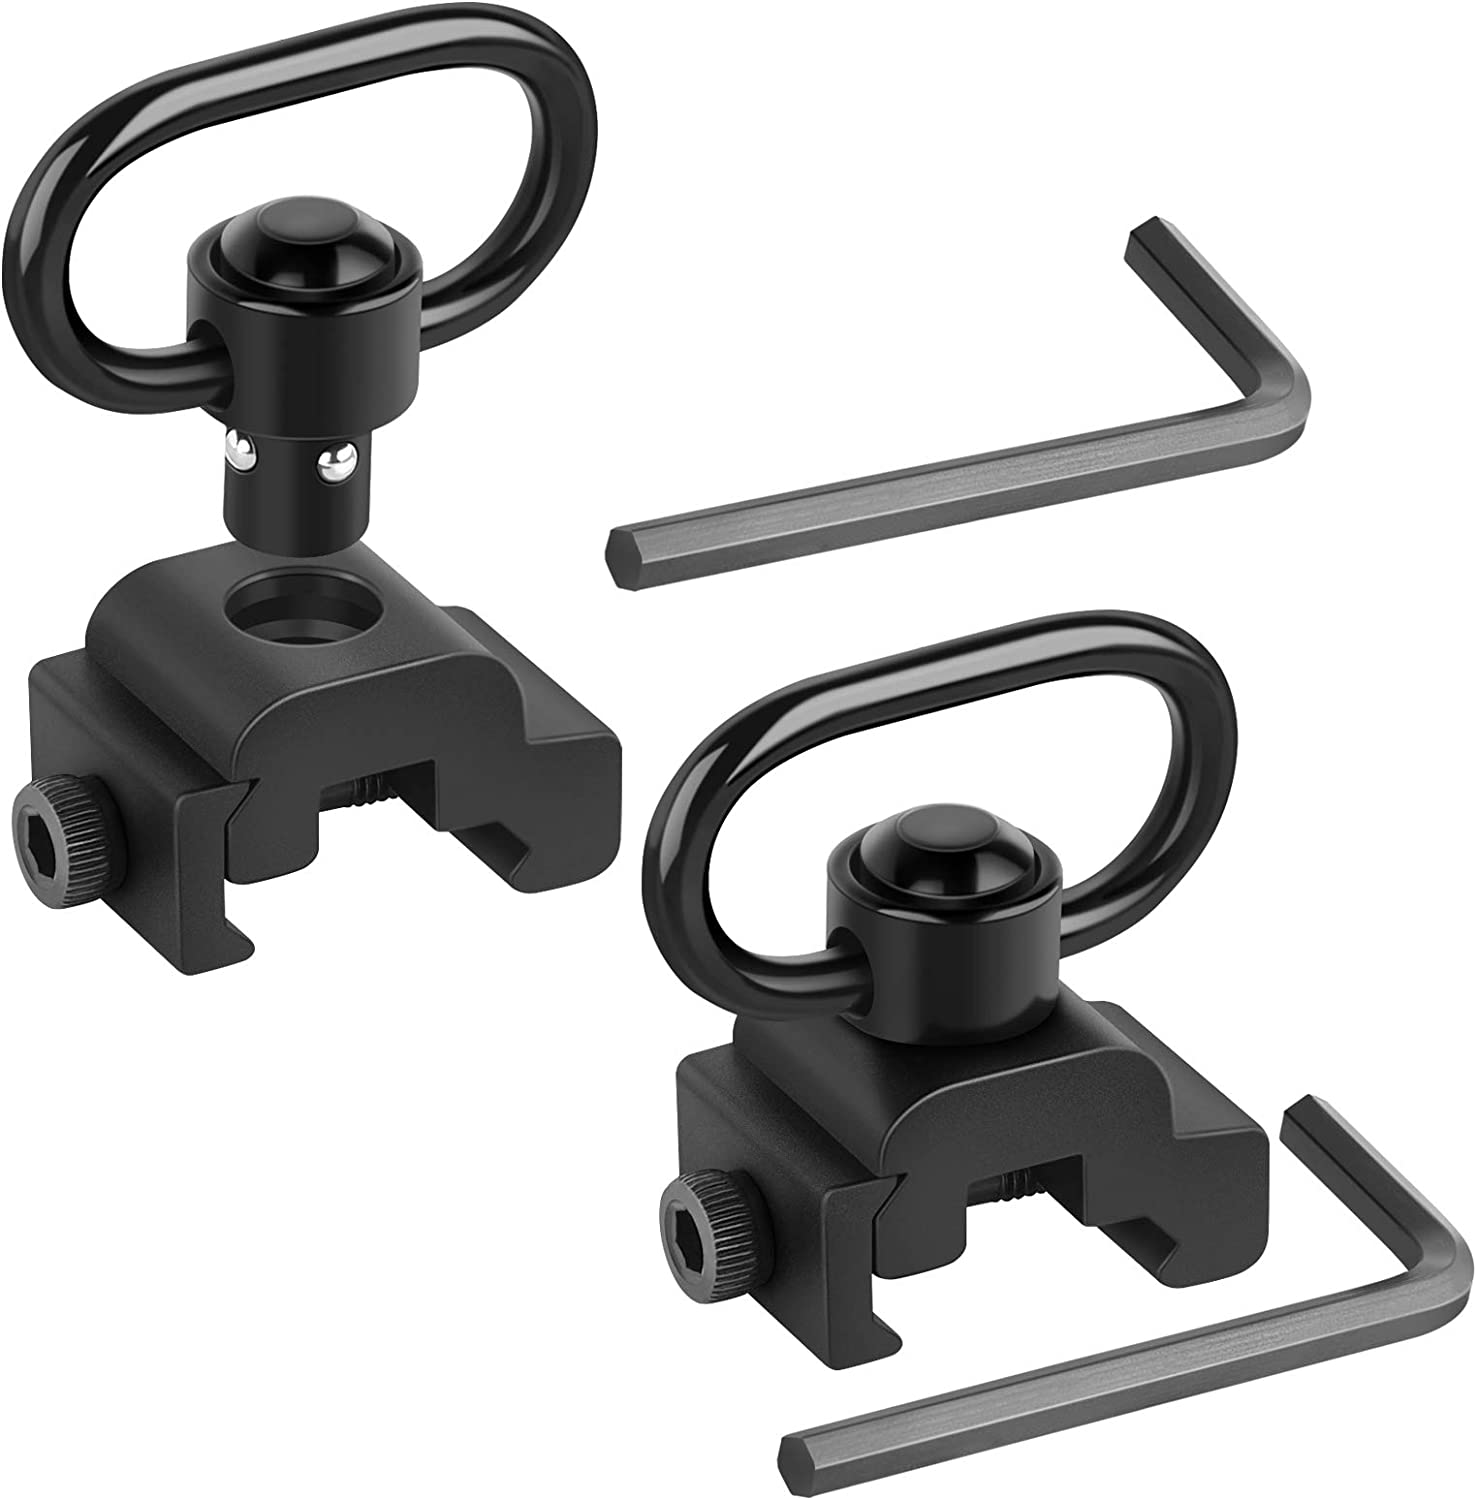 Tactical QD Sling Swivel Attachment Mount Adapter Base with 20mm Picatinny Rail